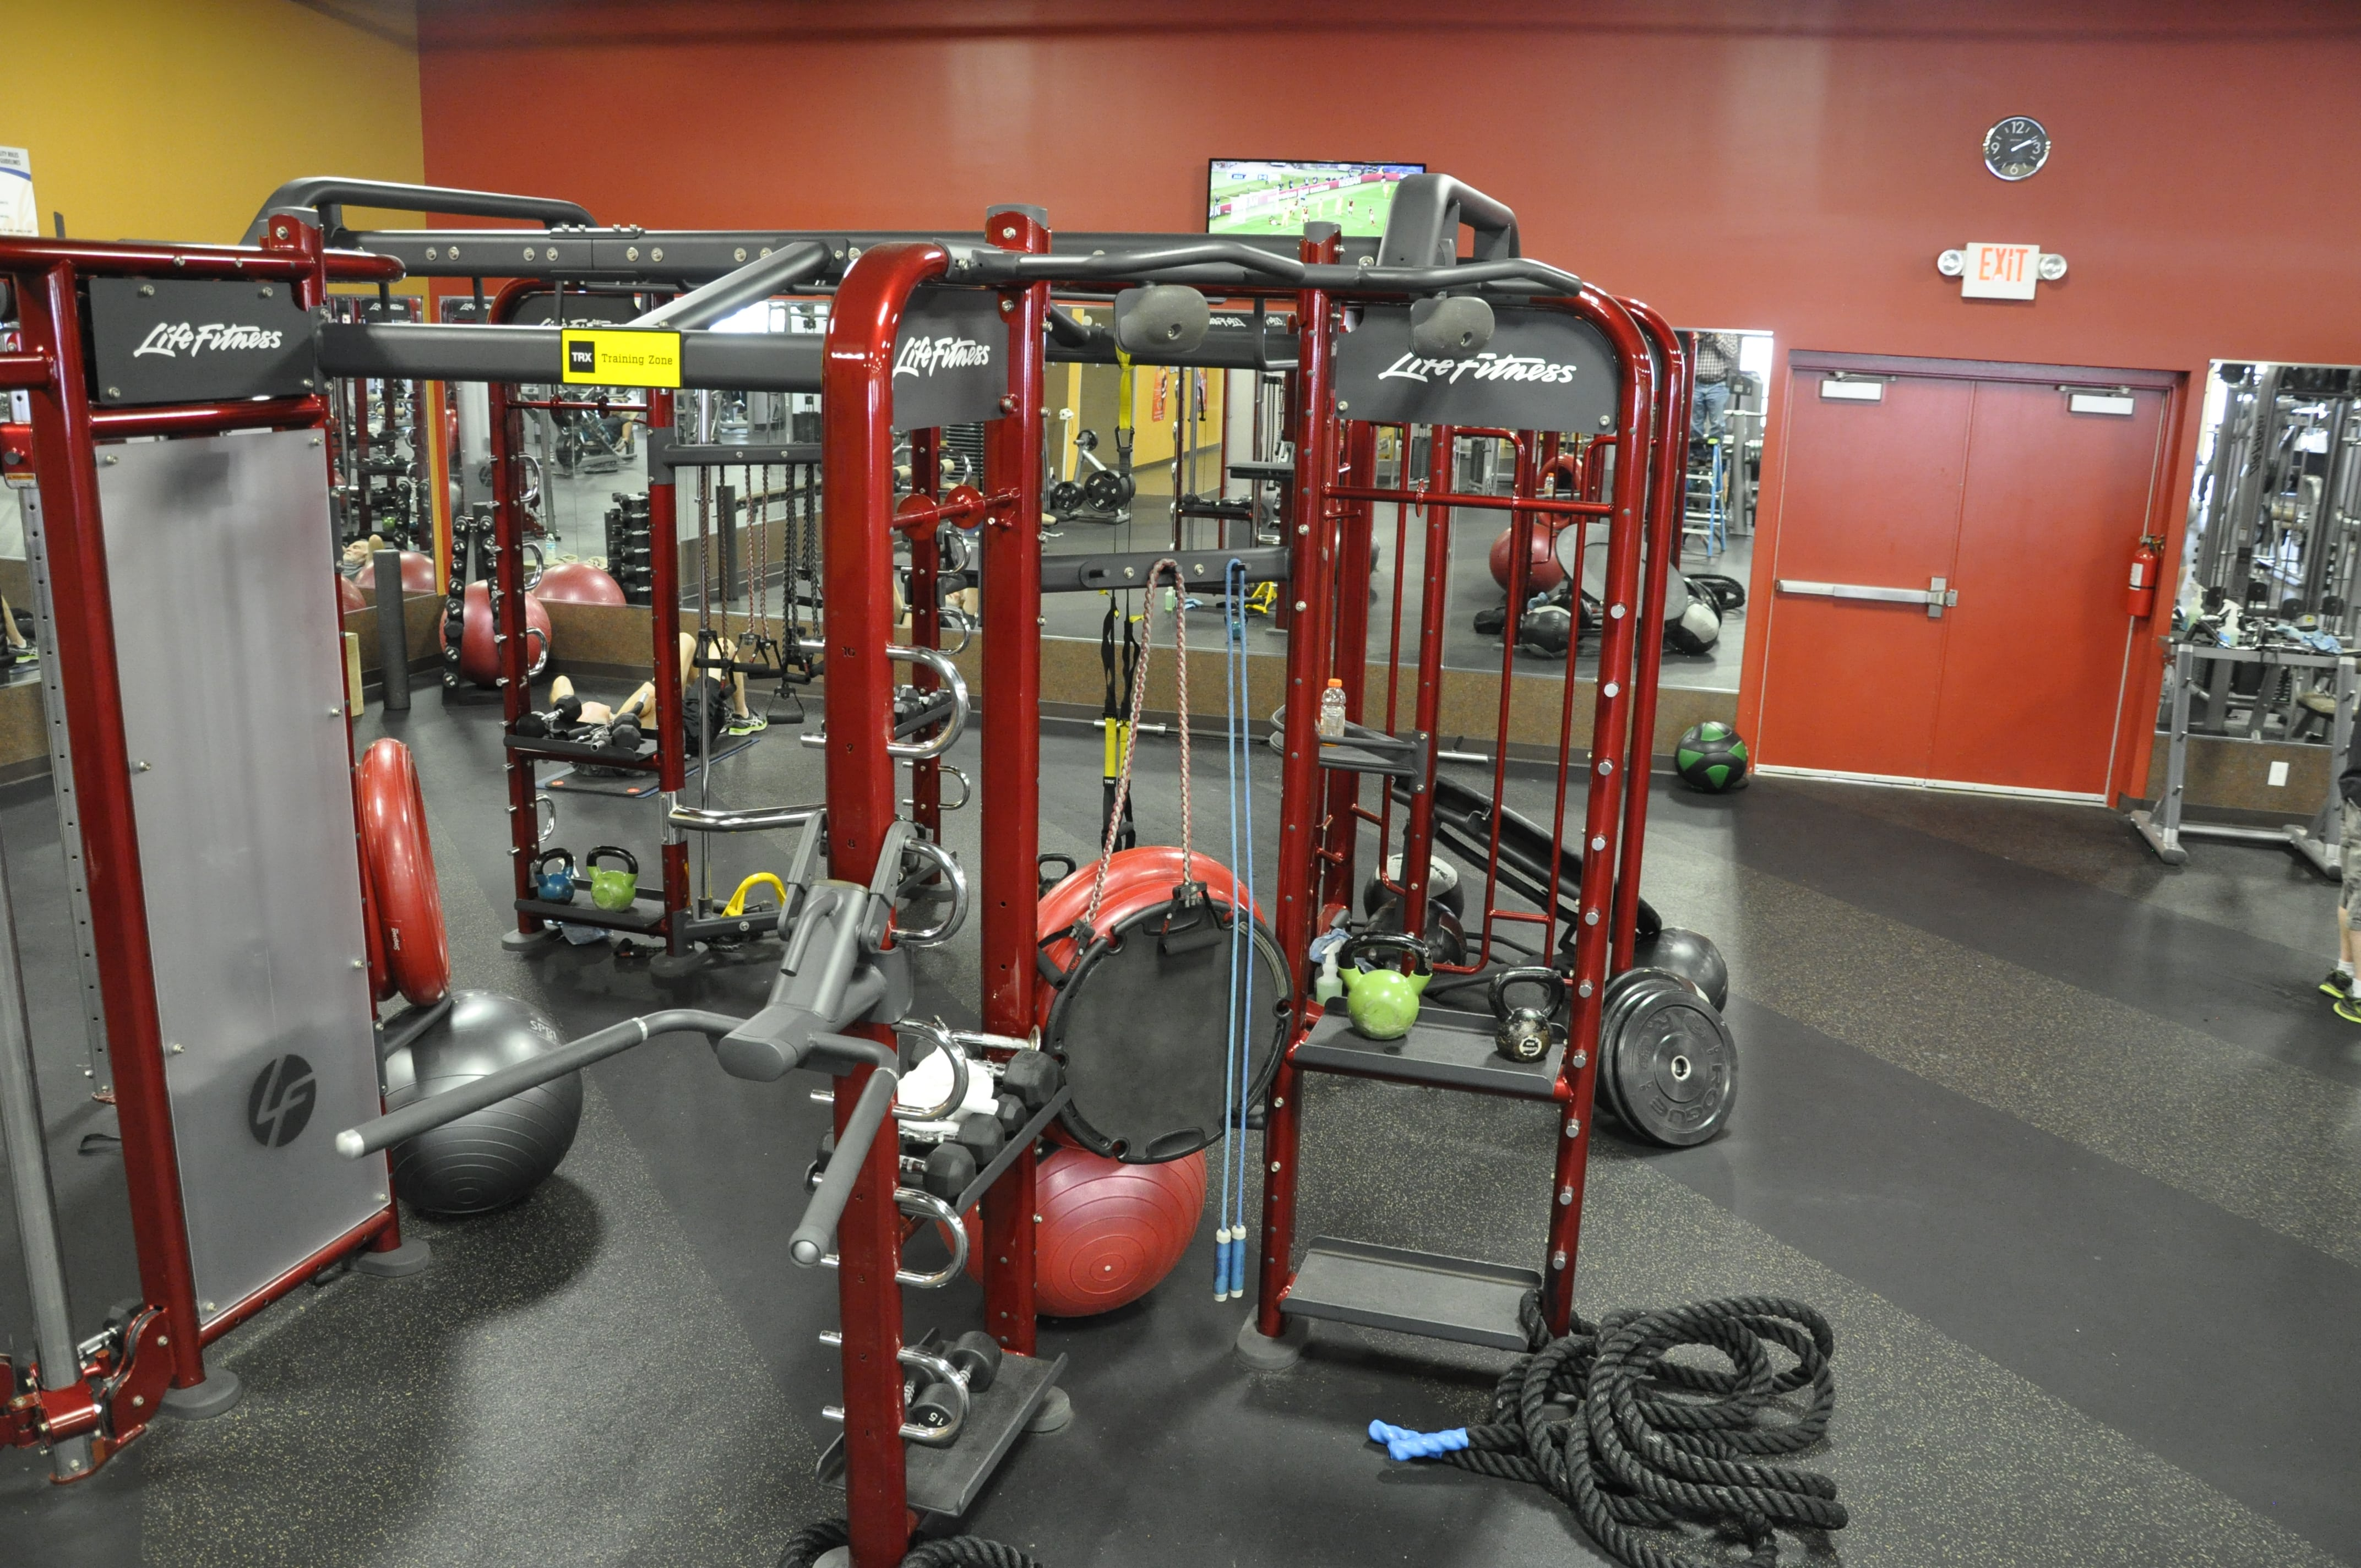 Club Fitness image 5